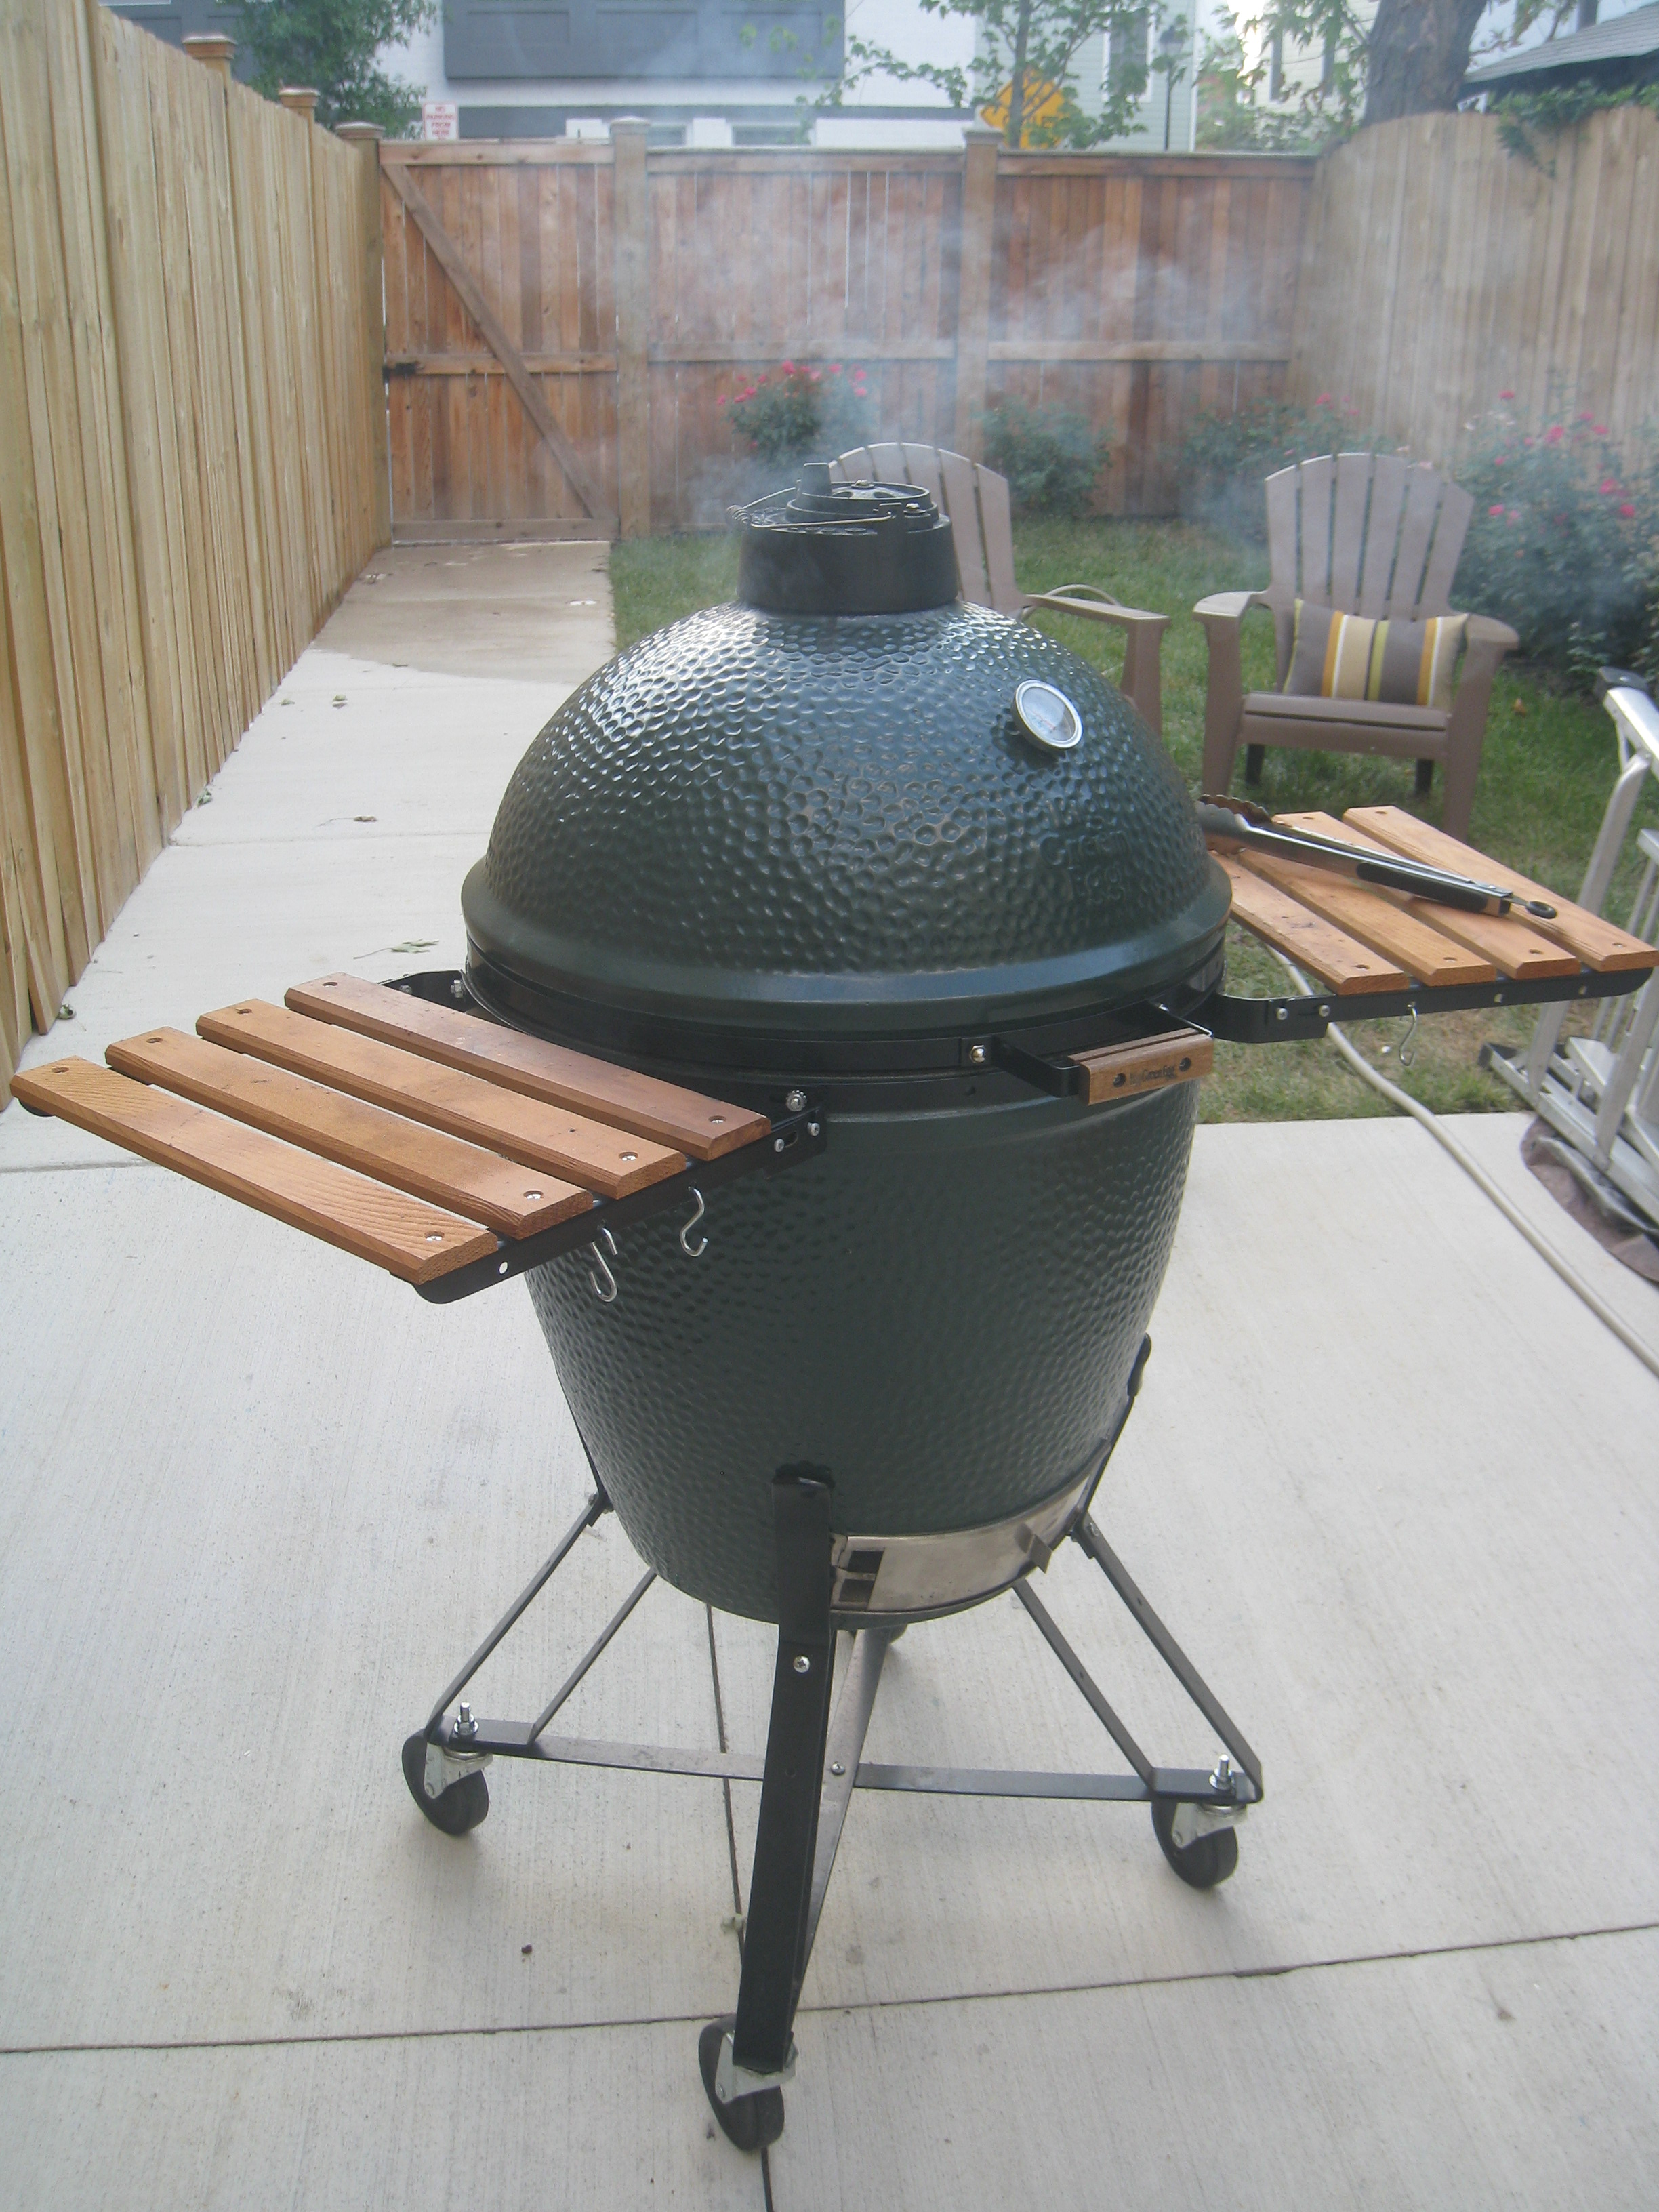 Big Green Egg Archives Poe munications